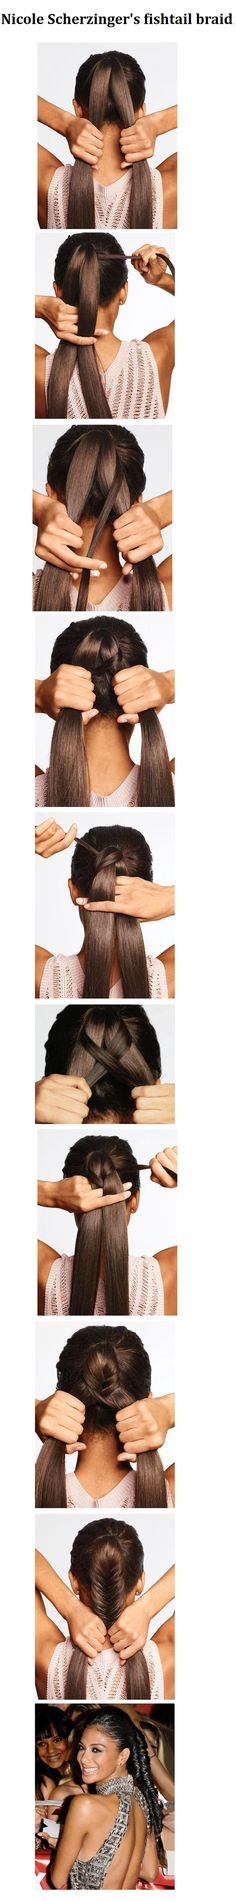 Nicole-Scherzingers-fishtail-braid